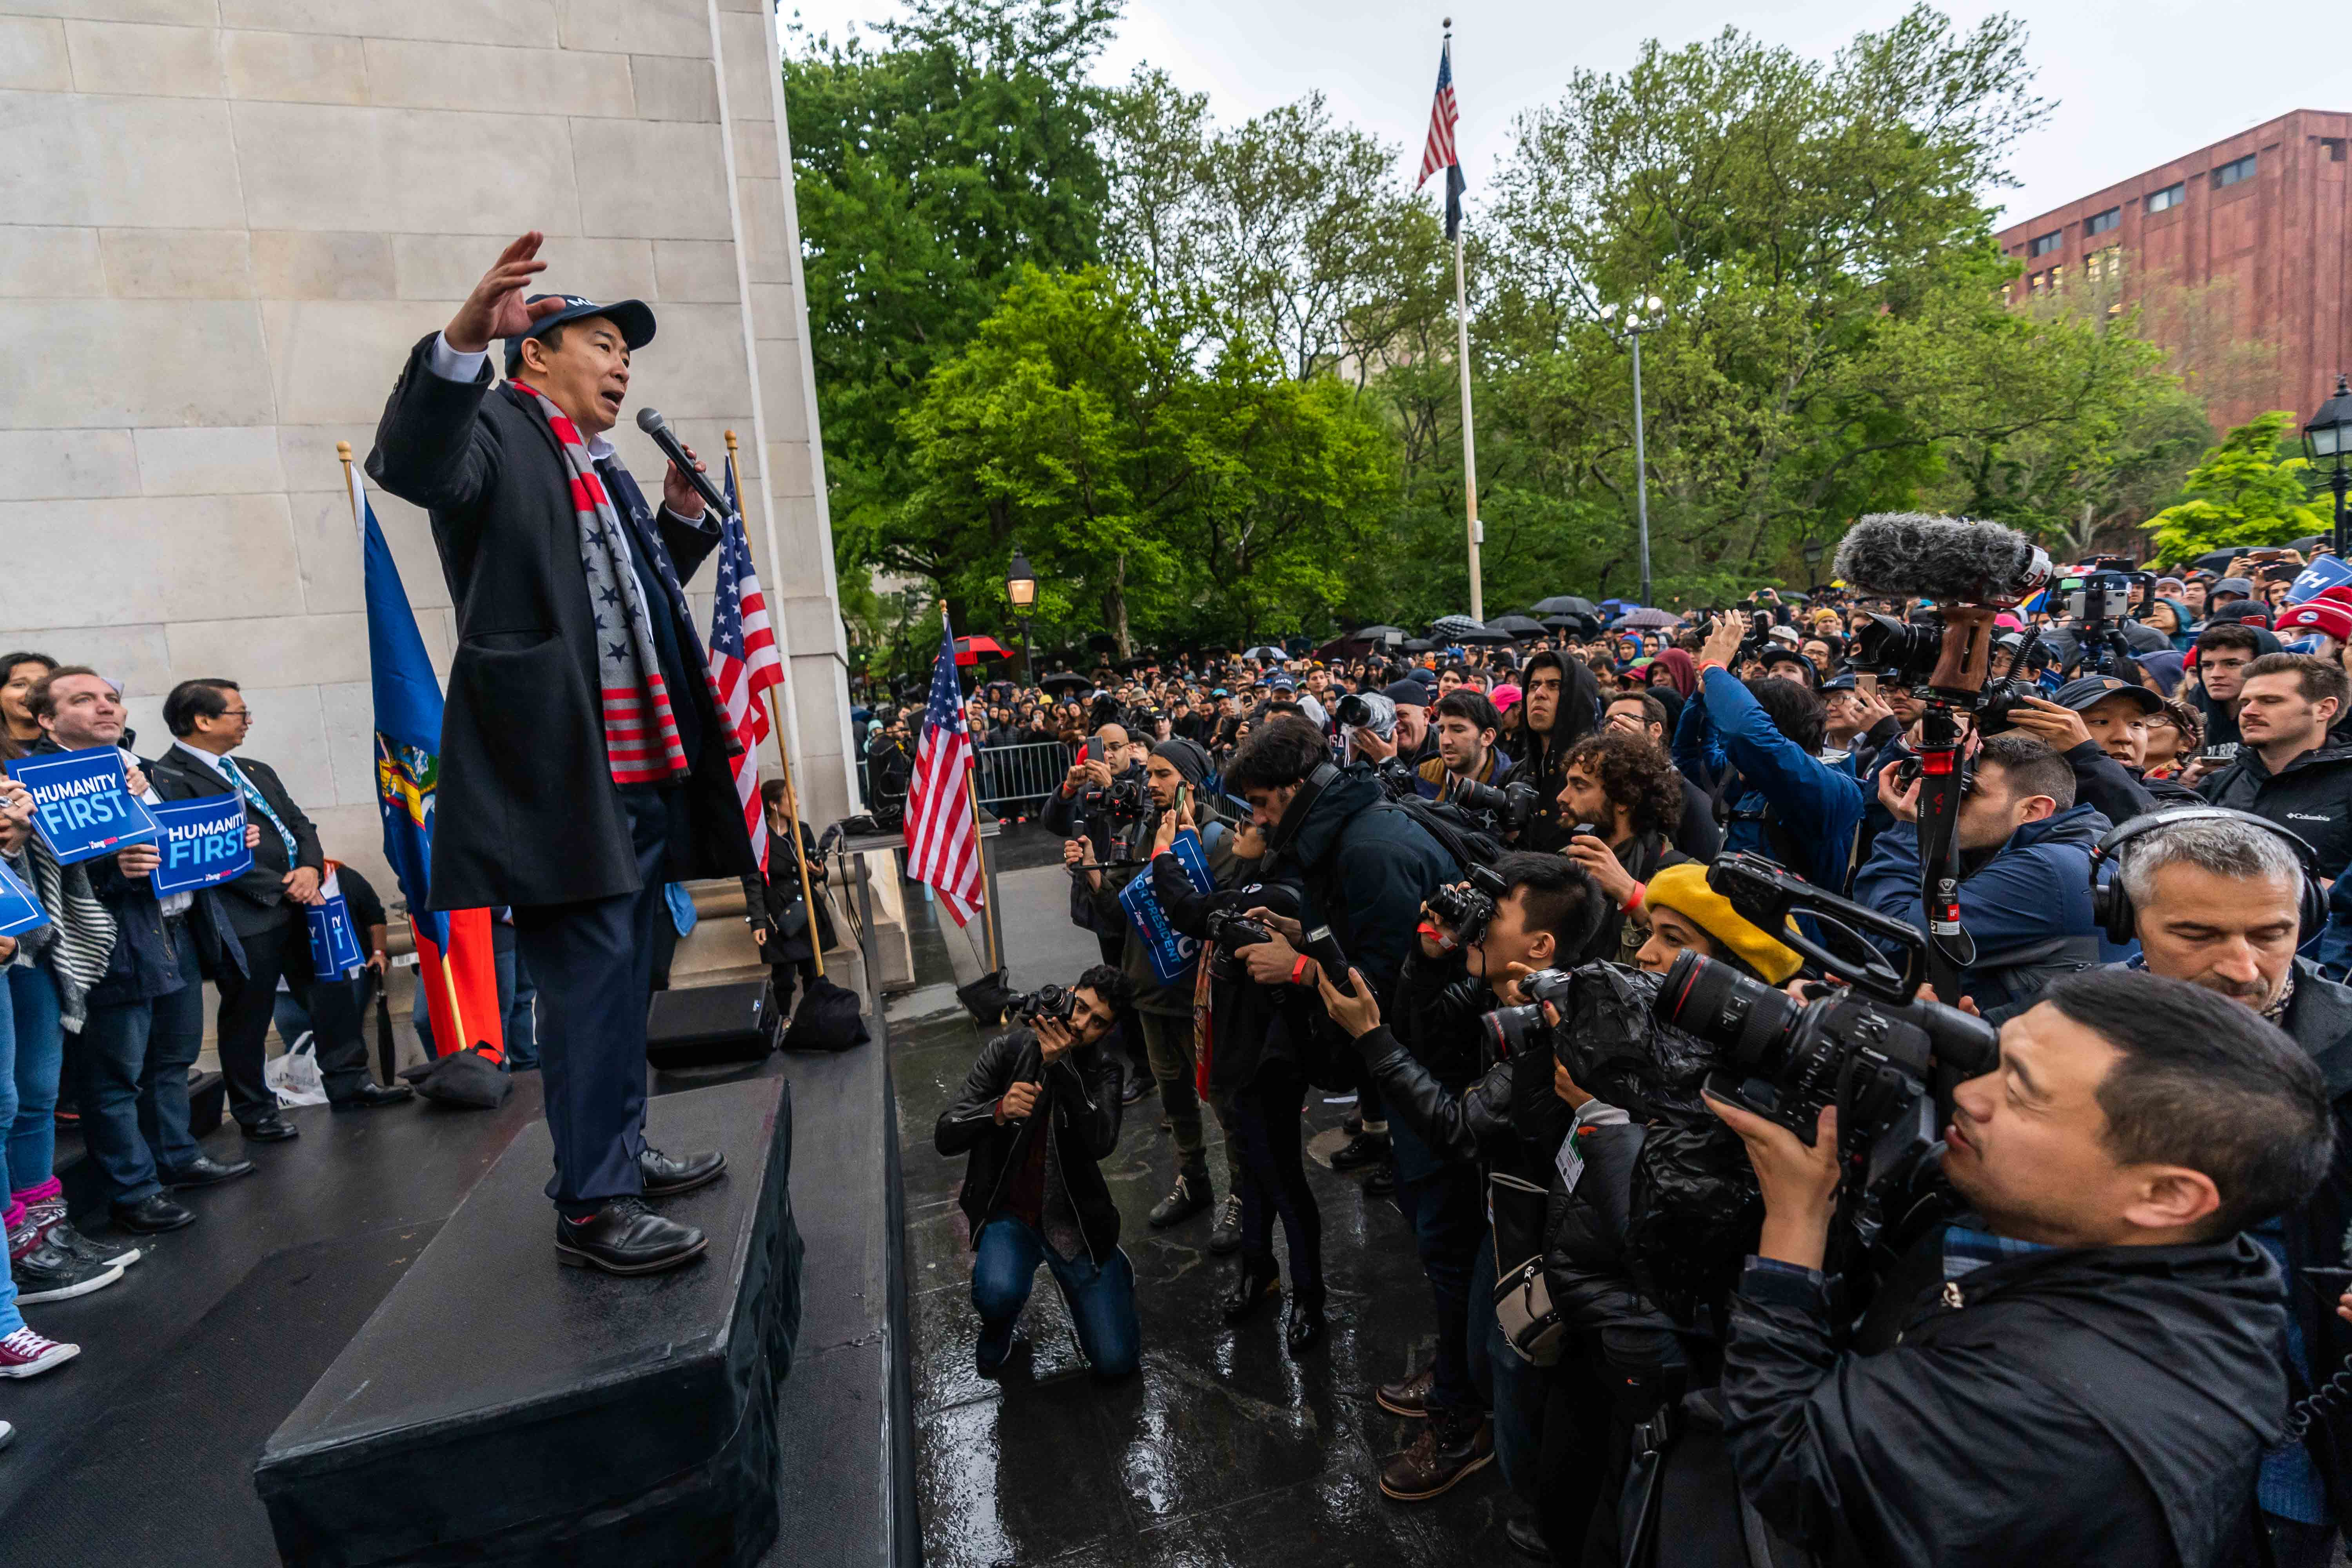 Andrew Yang stands in front of a crowd in Washington Square Park, delivering a speech as the rain falls